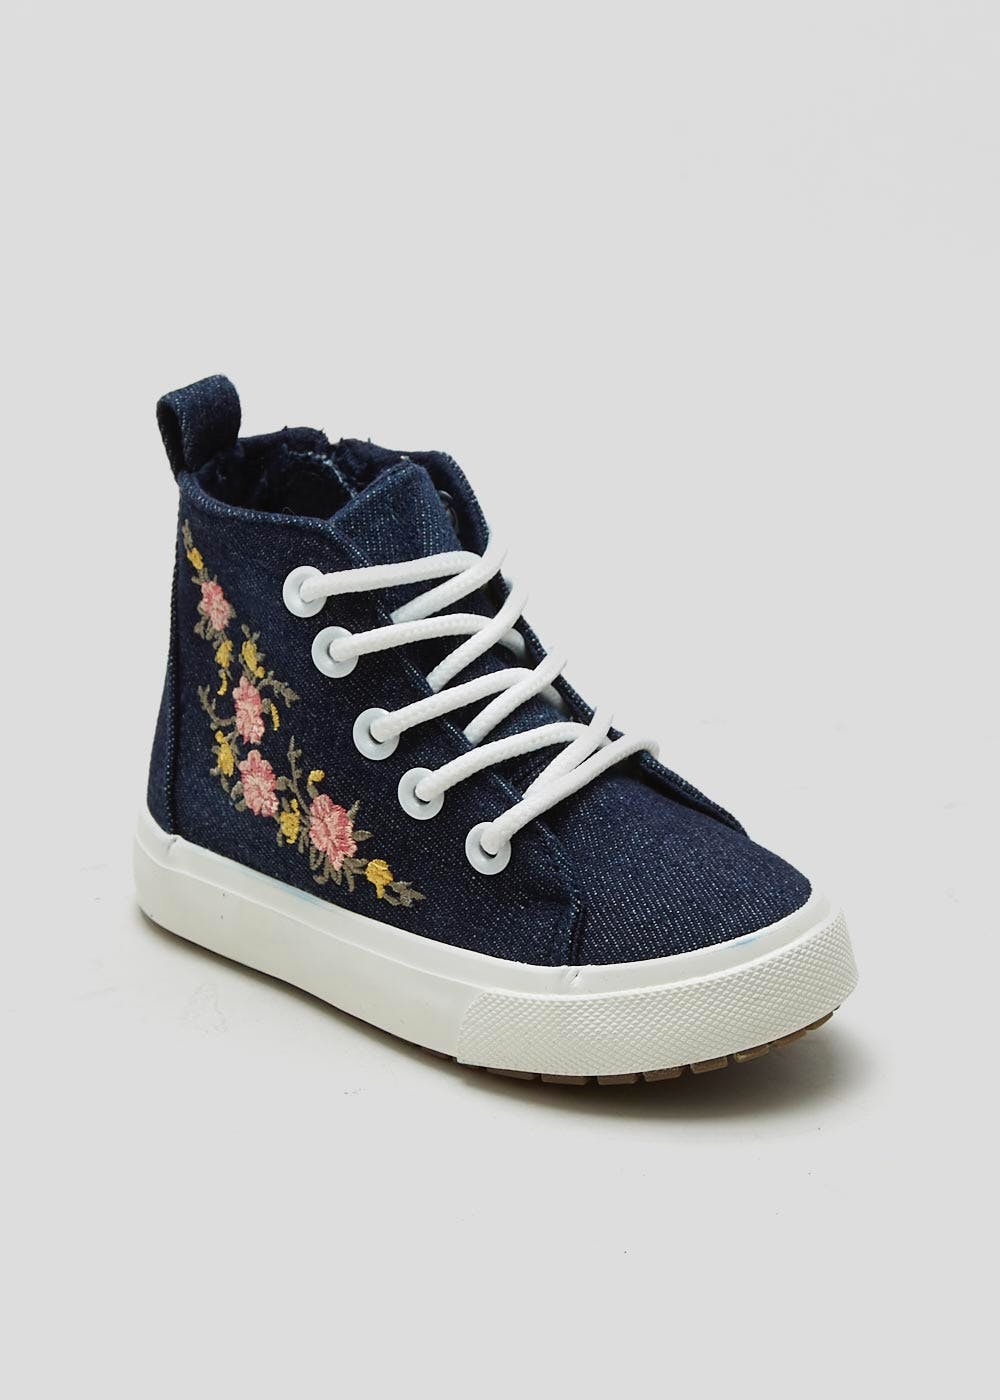 Save matalan ladies shoes to get e-mail alerts and updates on your eBay Feed. + Ladies grey high top trainers from Fiore at Matalan size 6. Pre-Owned. $ Time left 5d 6h left. 0 bids. From United Kingdom. or Best Offer. Customs services and international tracking provided +$ shipping.